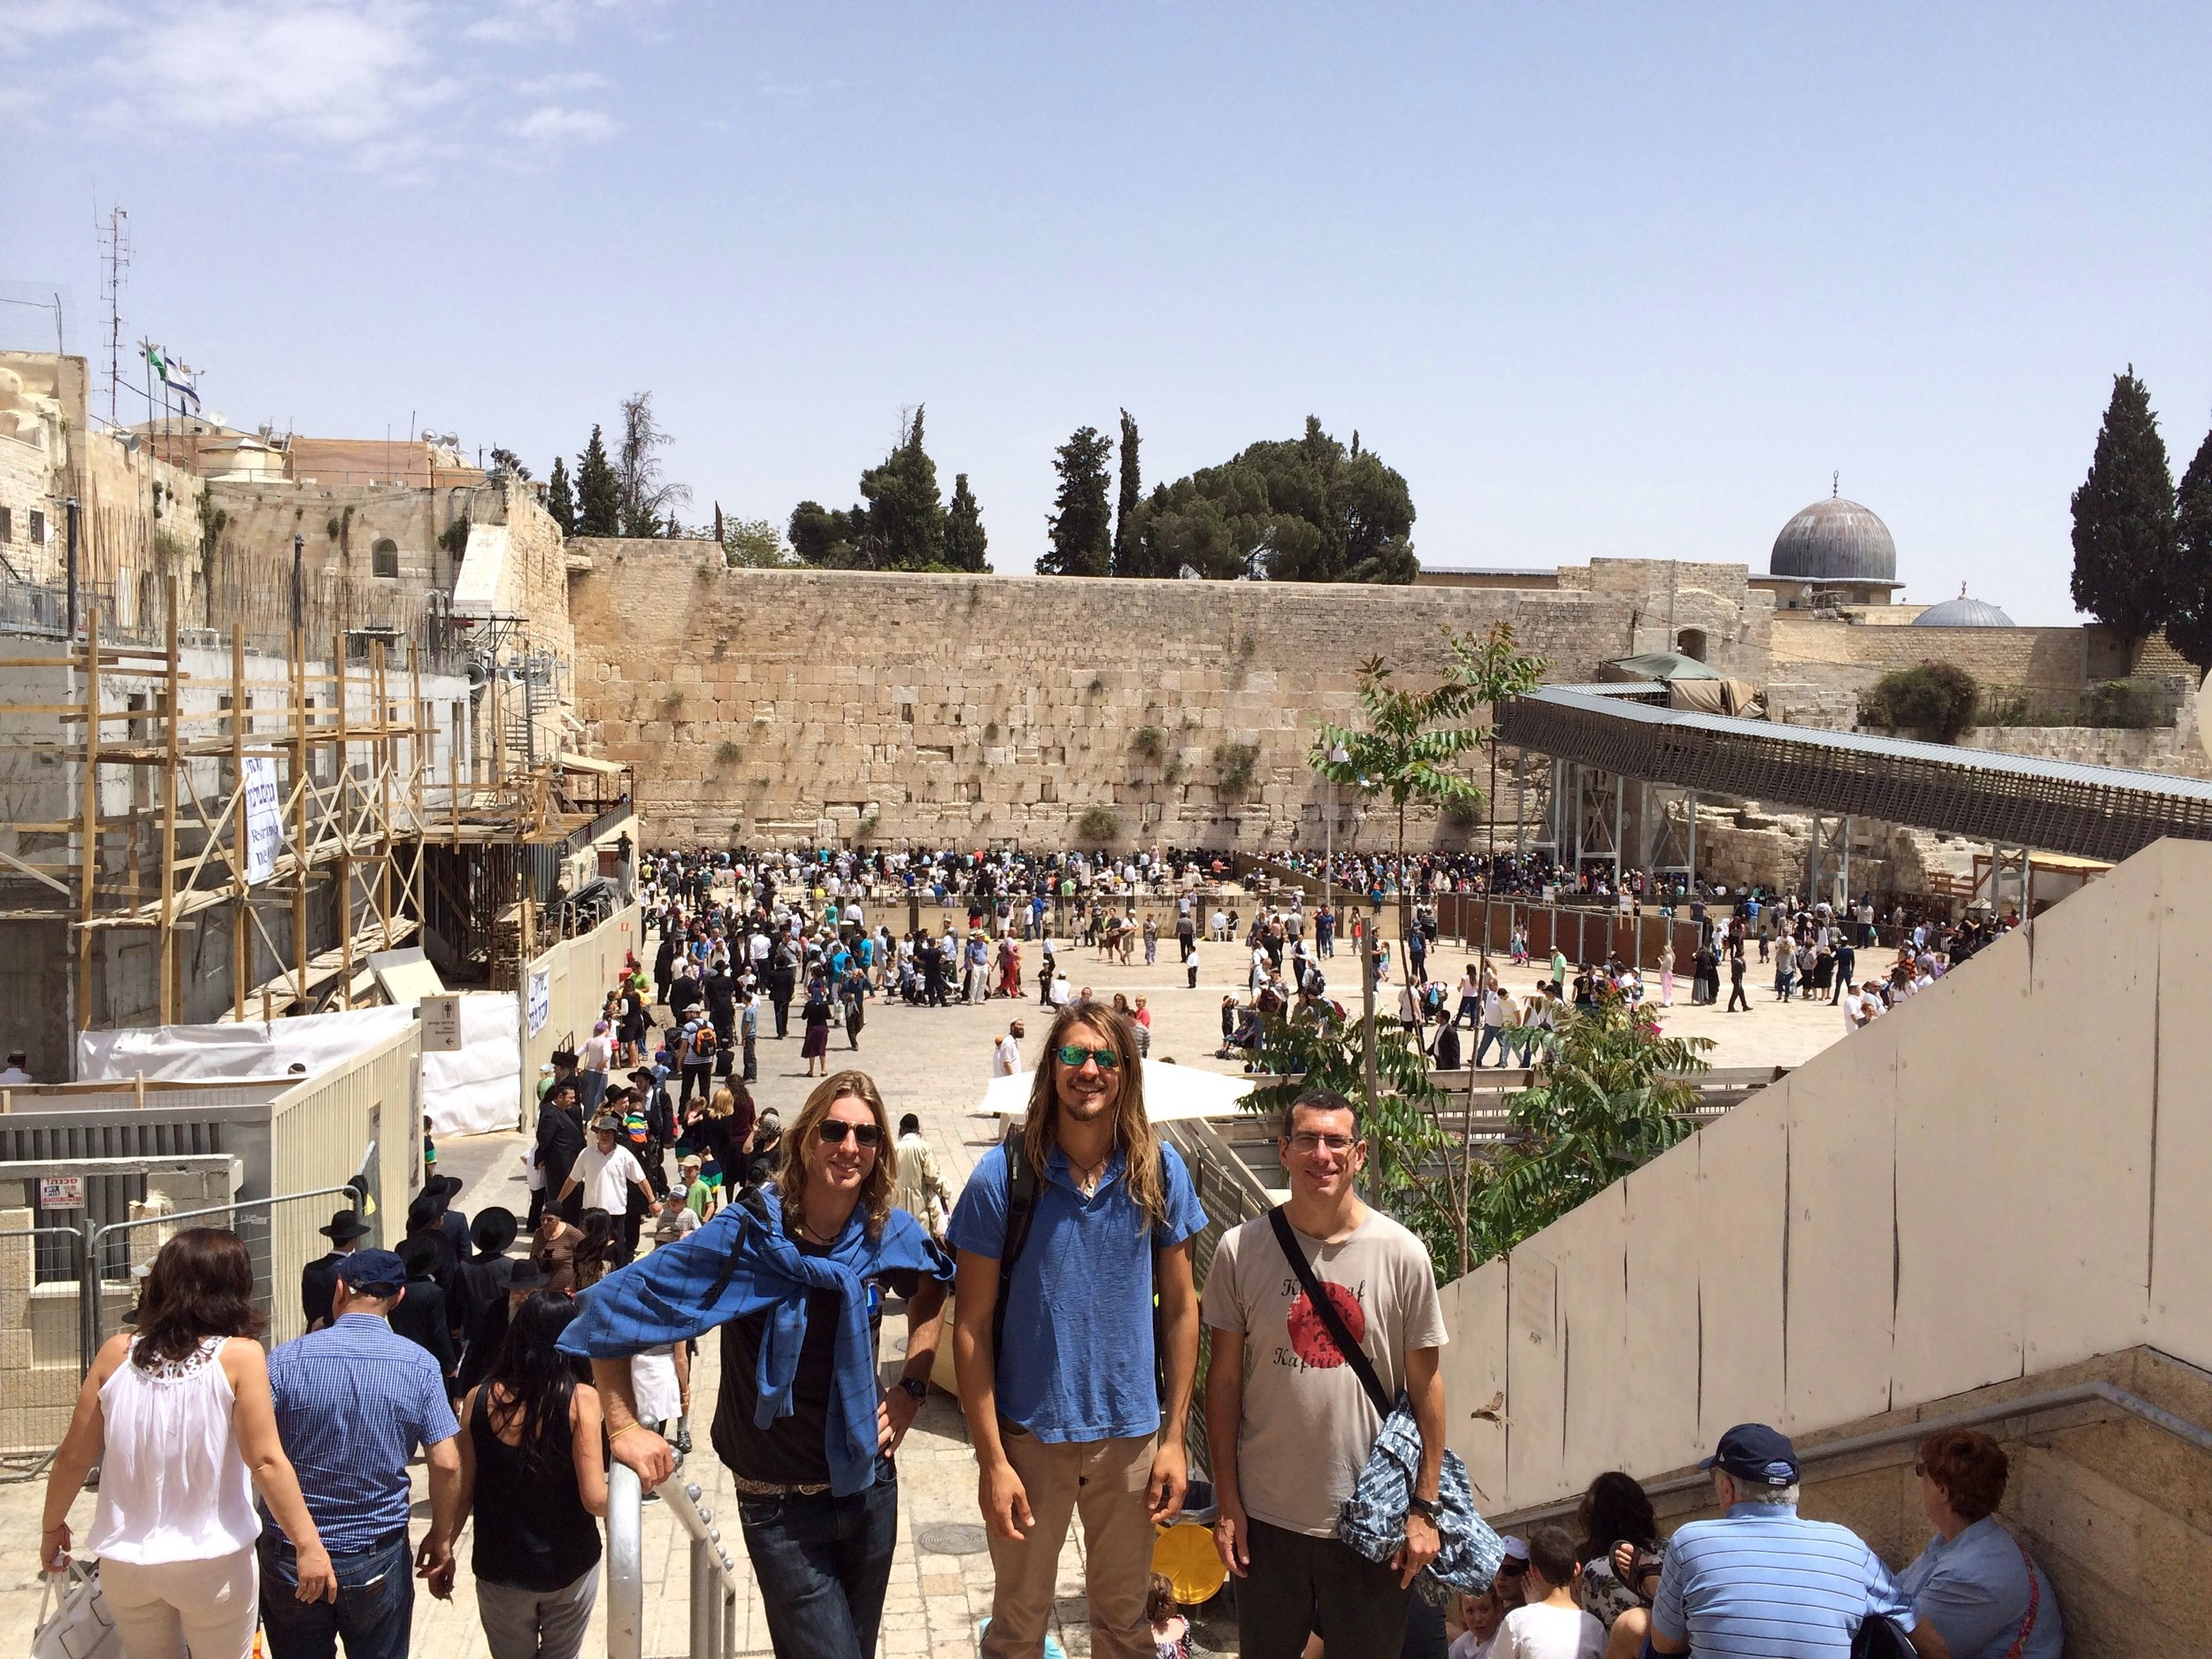 Chad, Tyler and Oded at the Western Wall